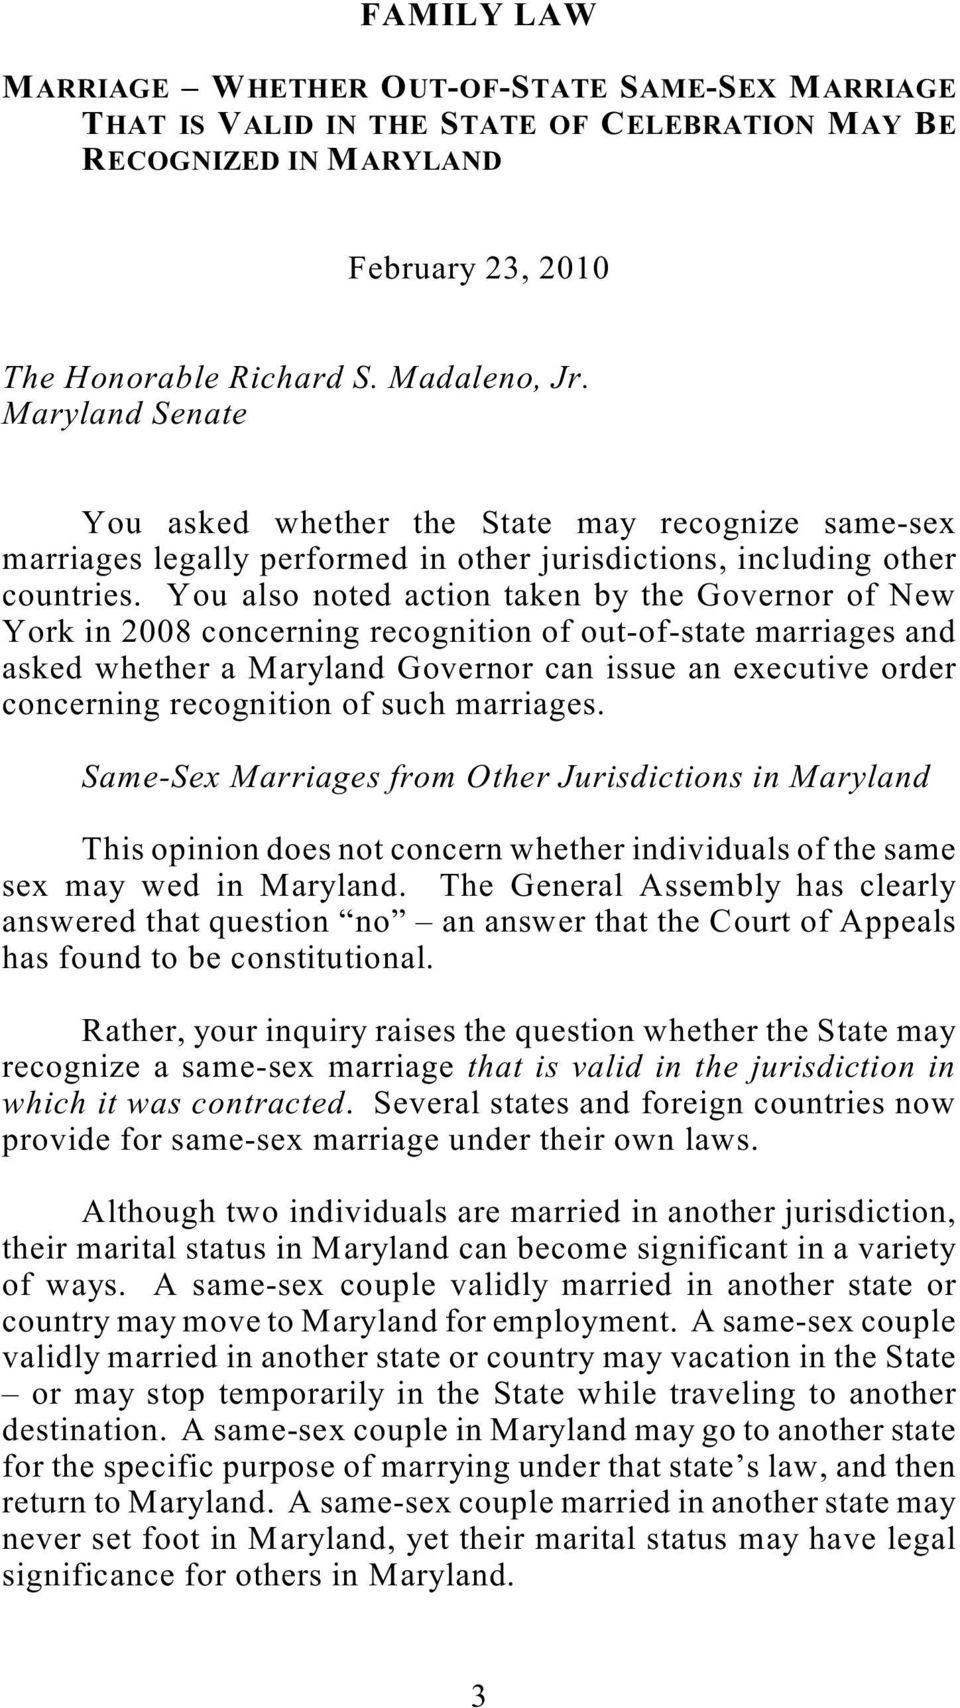 You also noted action taken by the Governor of New York in 2008 concerning recognition of out-of-state marriages and asked whether a Maryland Governor can issue an executive order concerning